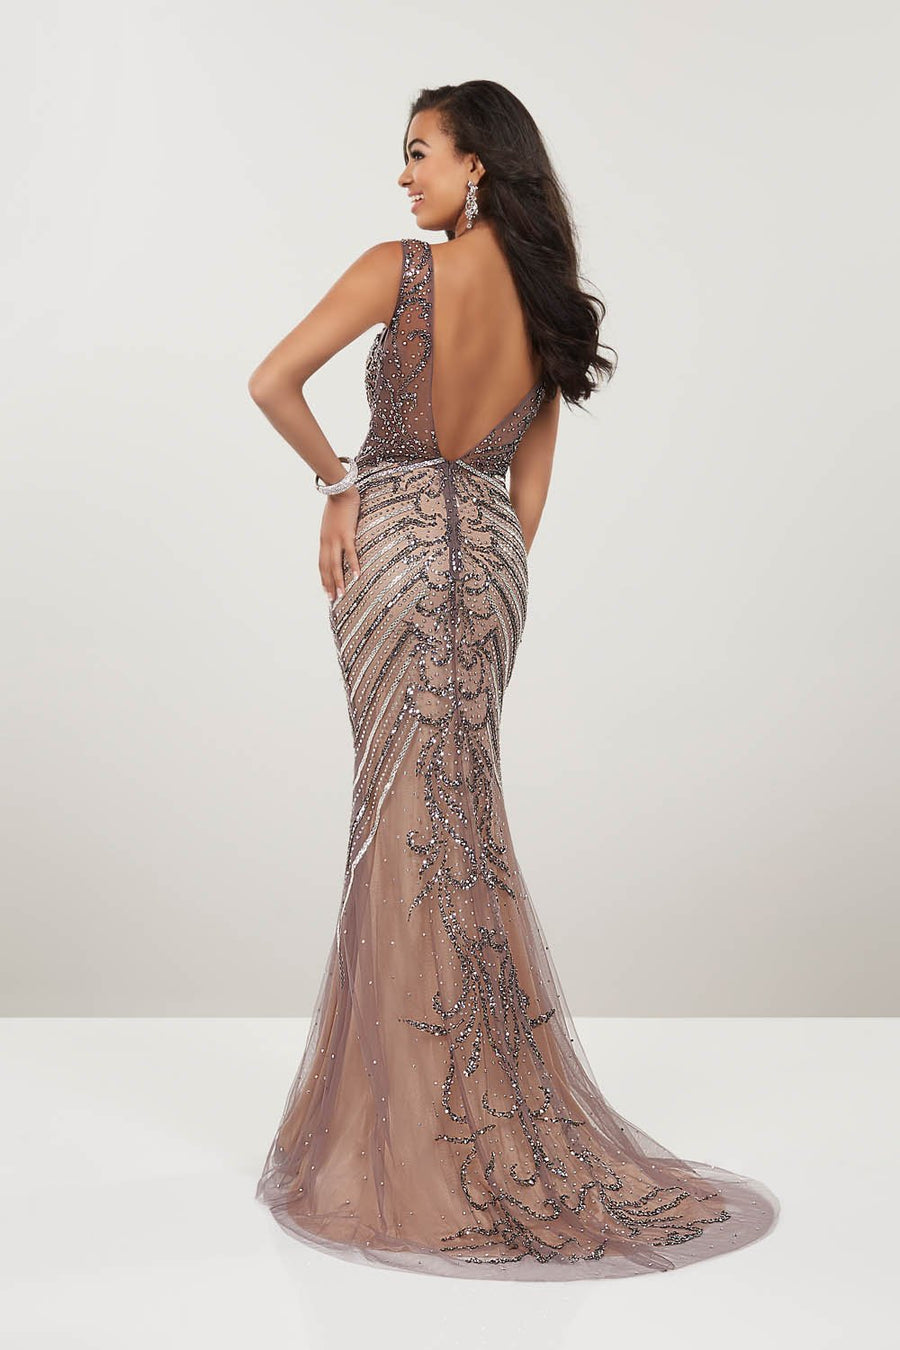 Panoply 14936 prom dress images.  Panoply 14936 is available in these colors: Gold Nude, Gunmetal Nude.